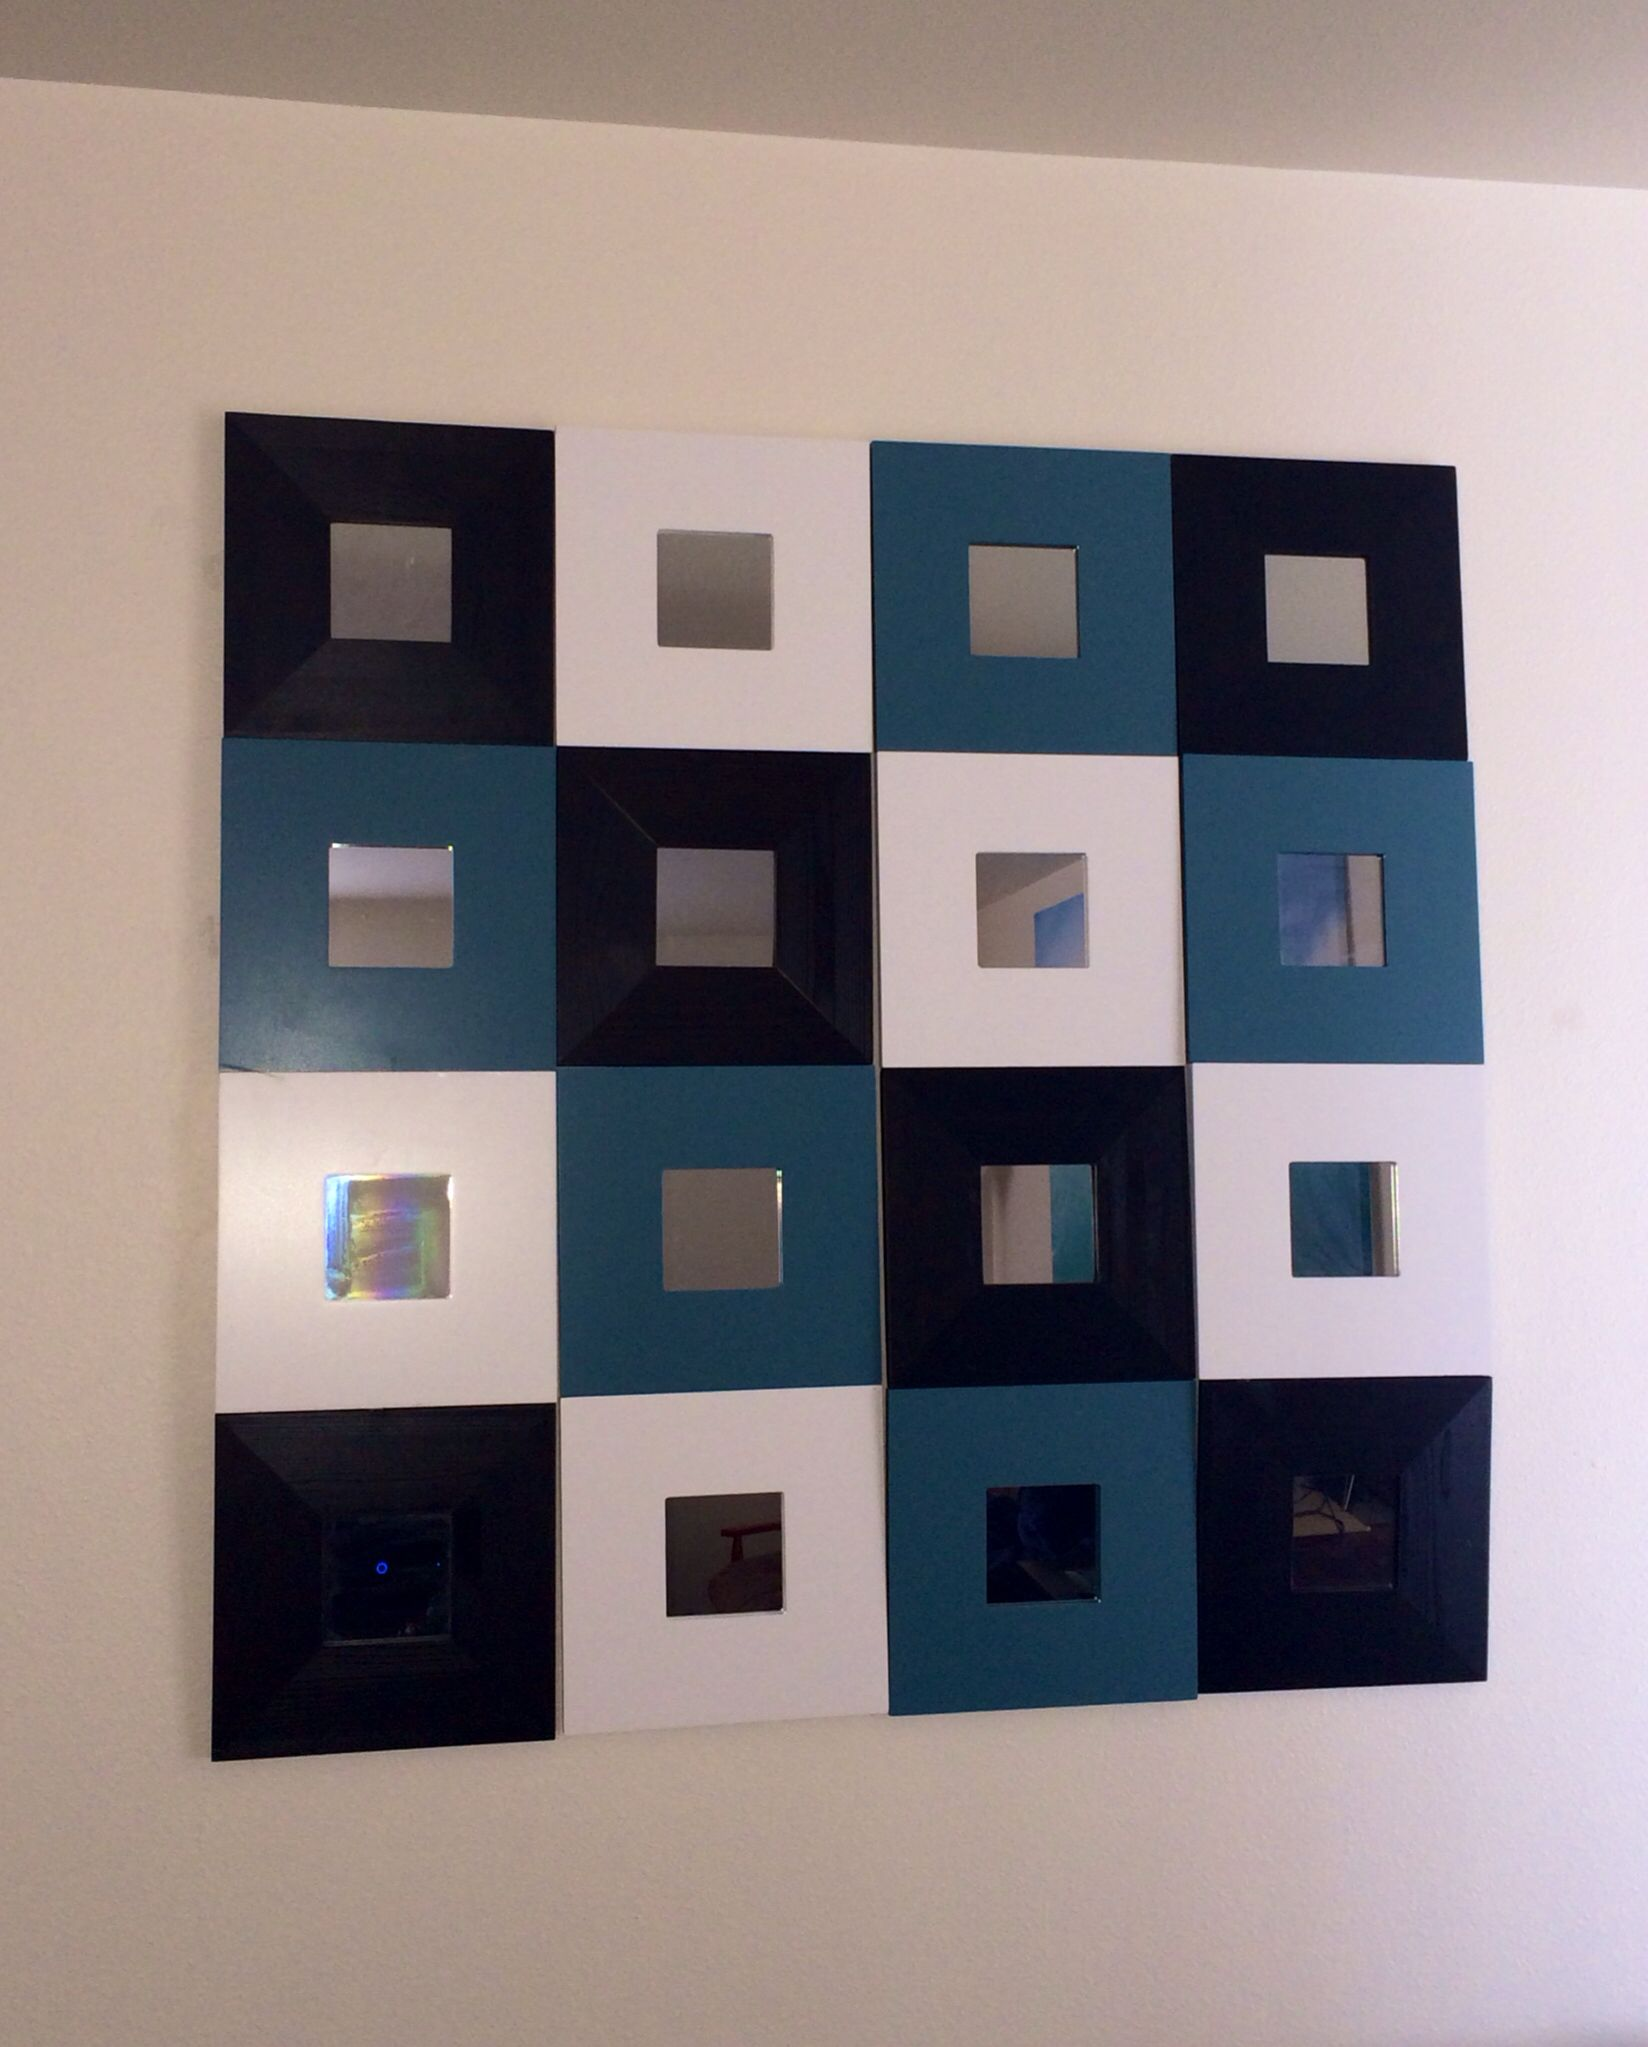 IKEA malmas mirrors using only 4 nails. It's  decent sized wall decor for only $1.99 per mirror!  I used duct tape to tape the 4 mirrors together. All three colors are stock from IKEA but you could paint them any color.